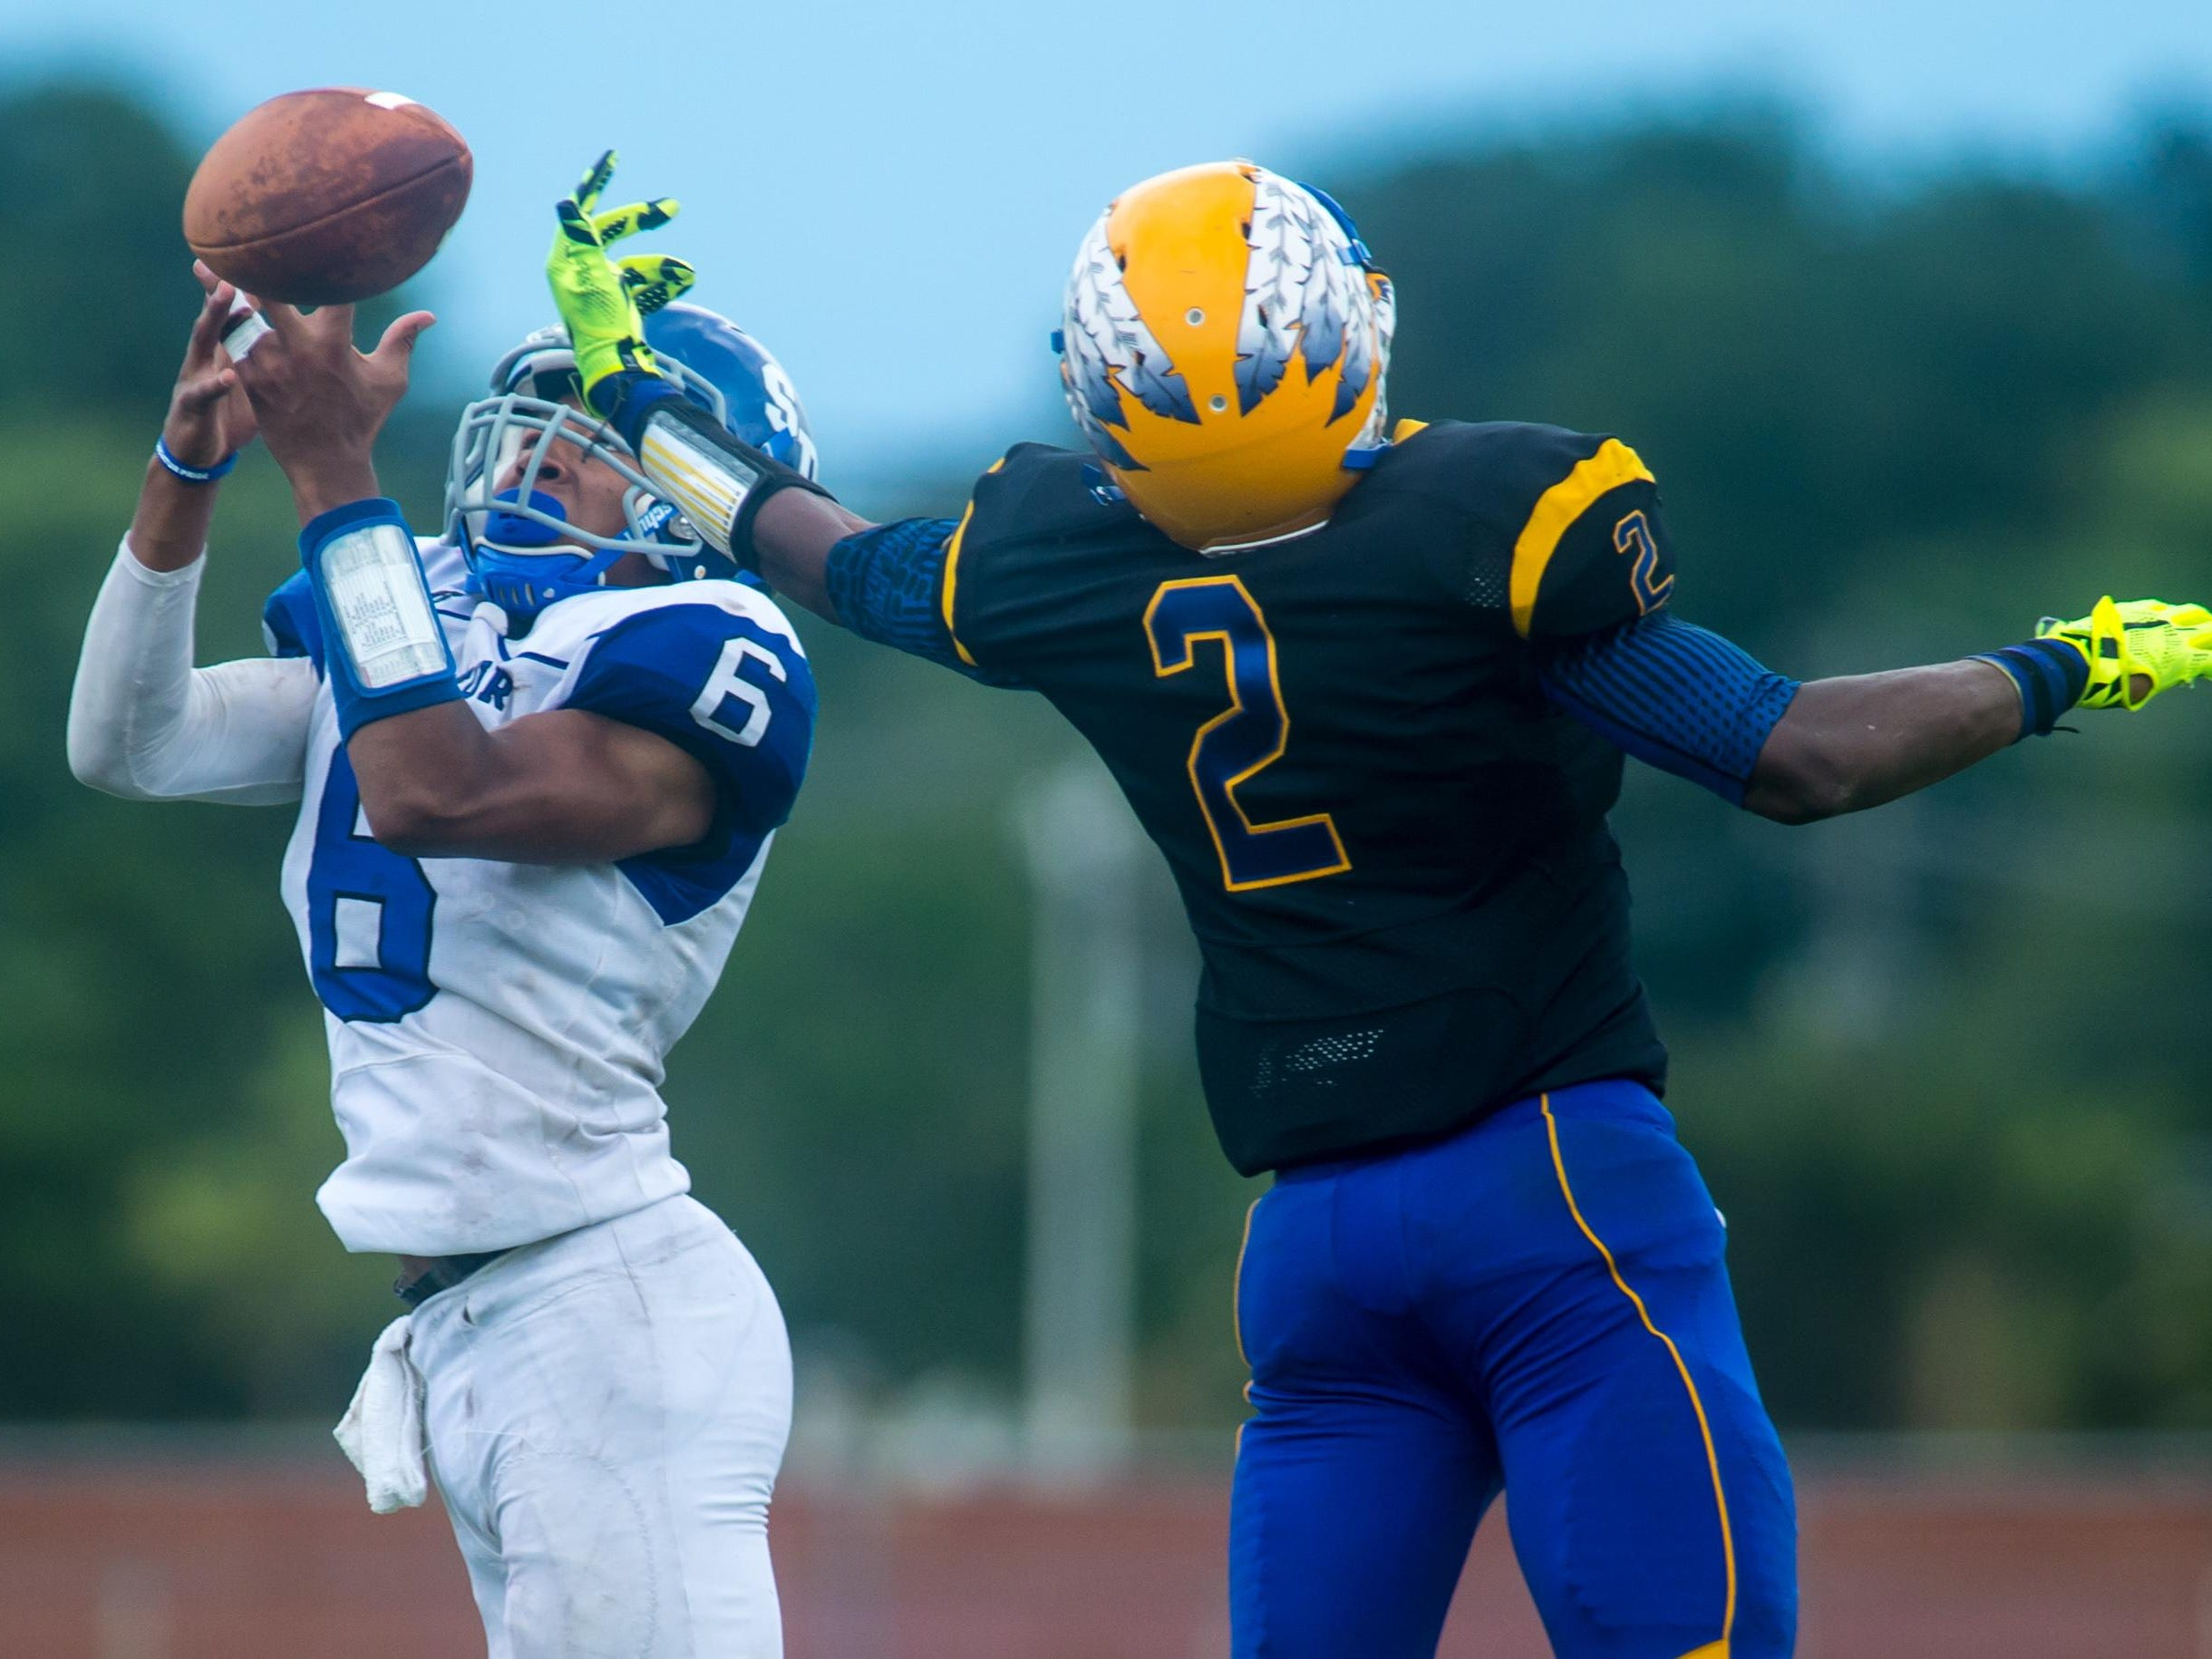 Stephen Decatur defensive back Darion McKenzie (6) attempts to pick off a Wicomico High pass intended for wide receiver Barry Gaines (2) on Saturday afternoon at Wicomico County Stadium.